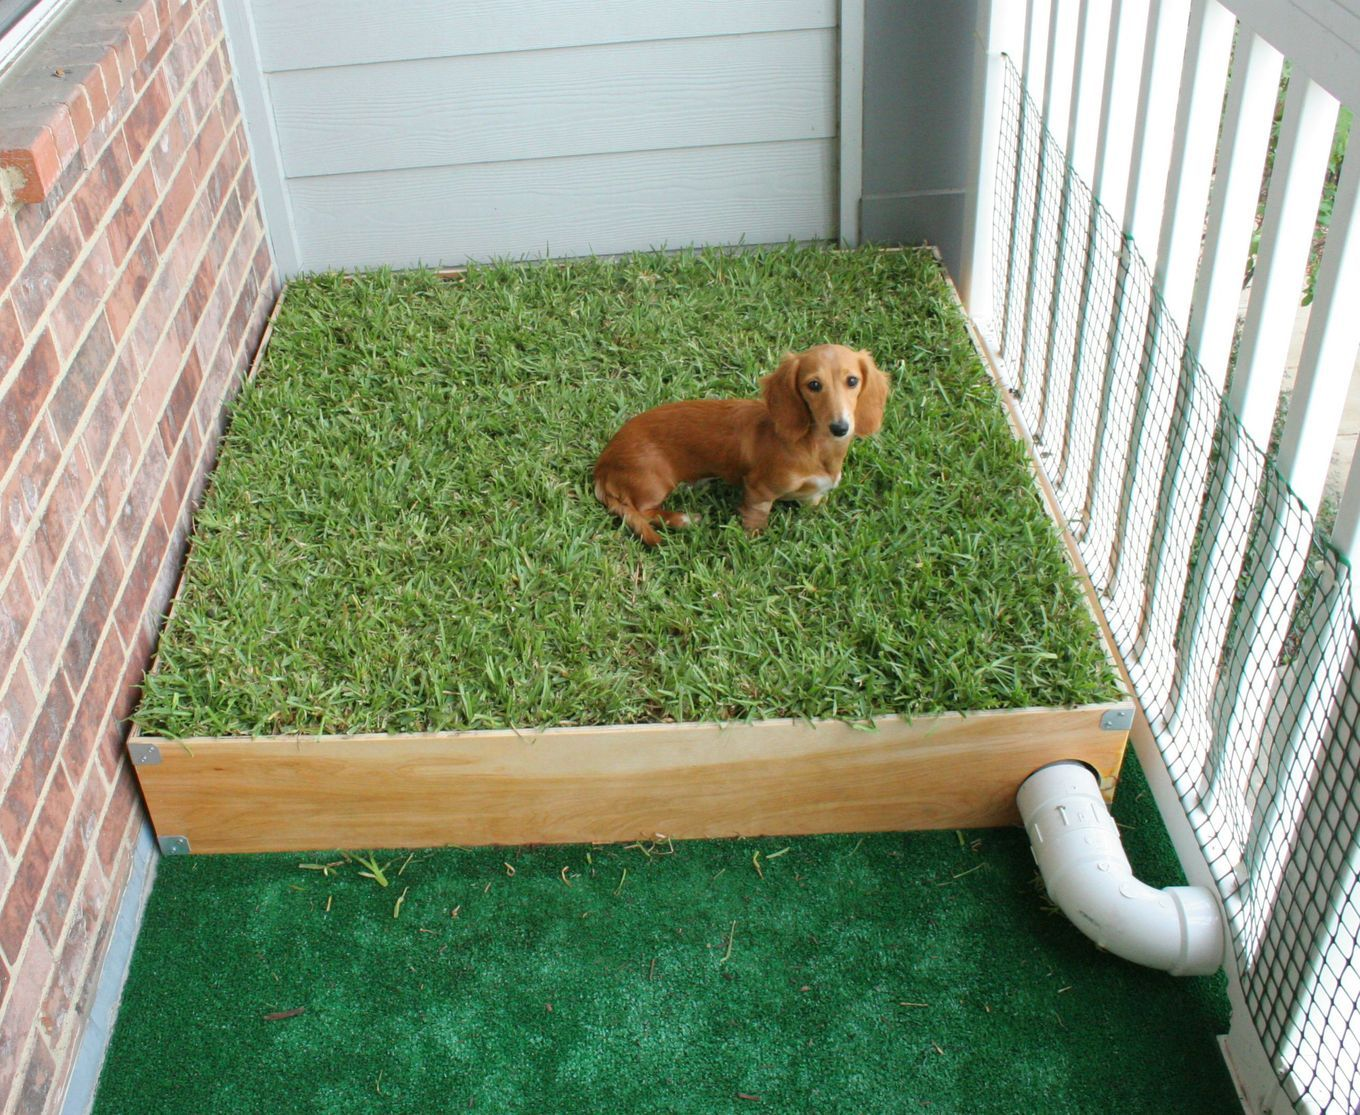 I Made This Doggy Potty Island Out Of Kiddie Swimming Pool, Palm U0026 3  Pallets Of Sod For Doggys With Limited Yard Opportunities!!! | Dog DIY |  Pinterest ...